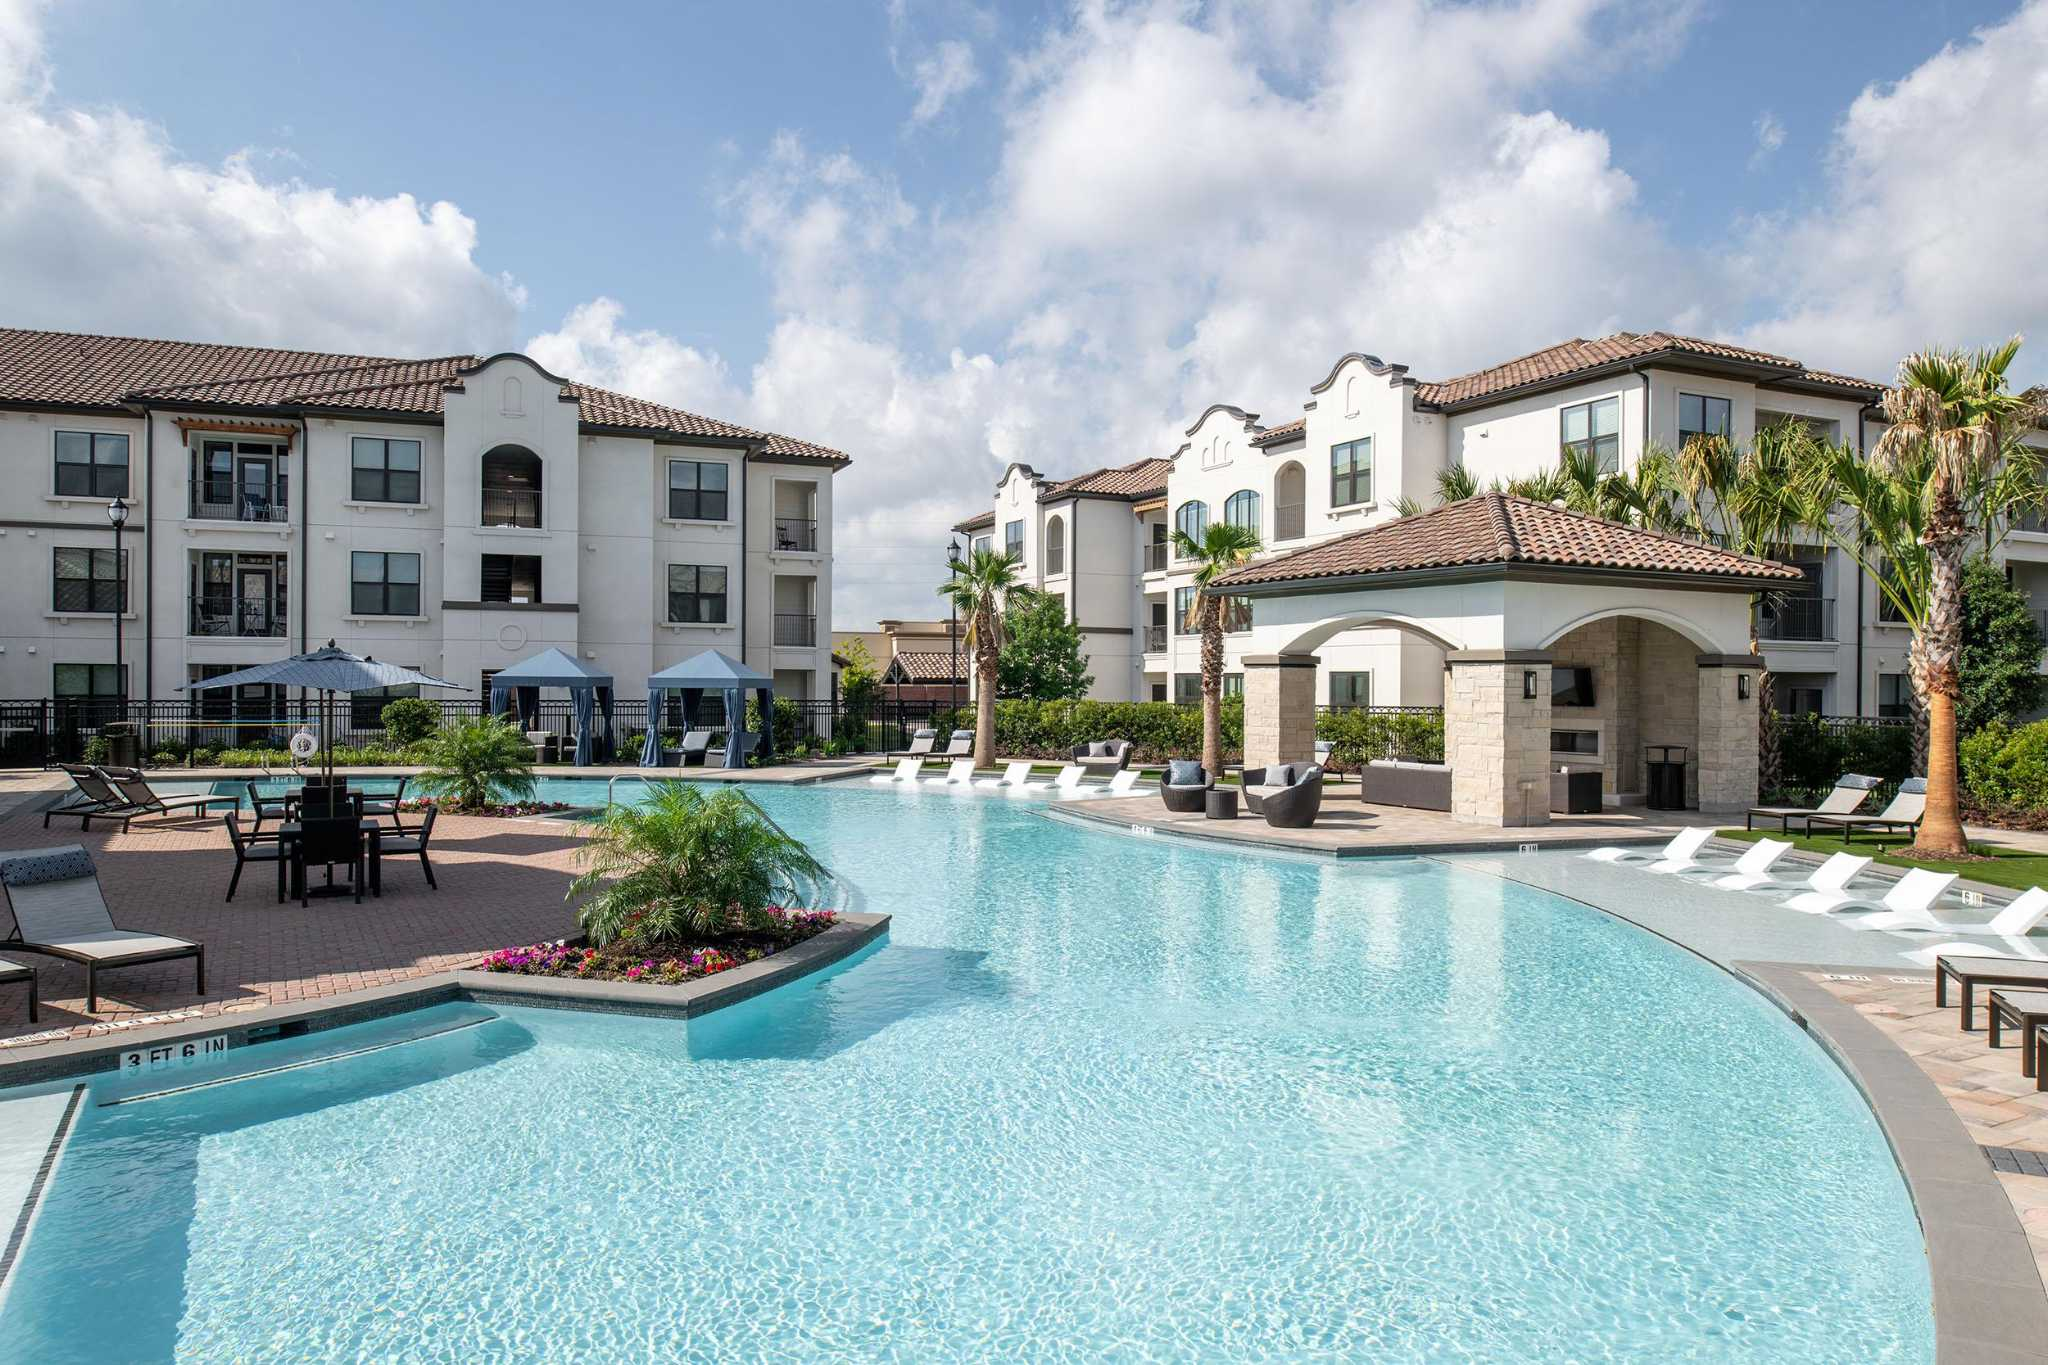 Houston apartment rent increases lag rest of country